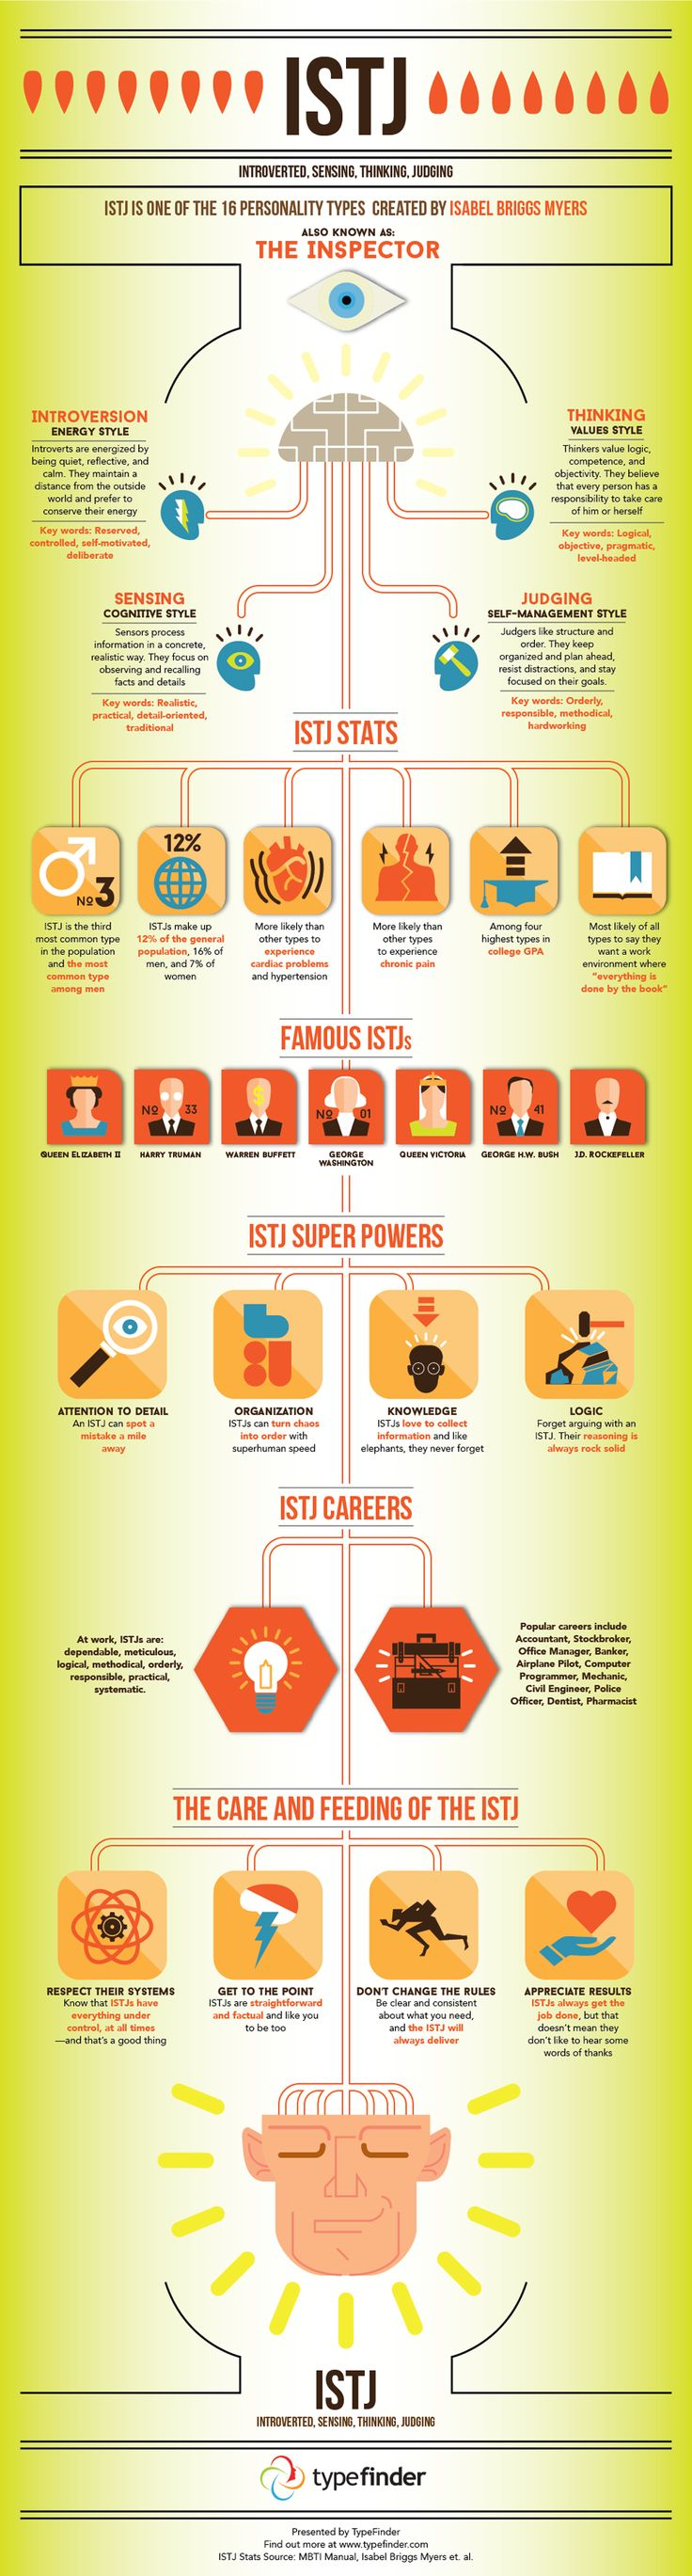 ISTJ Infographic - Facts and Stats about the ISTJ personality type - yep, this is definitely me